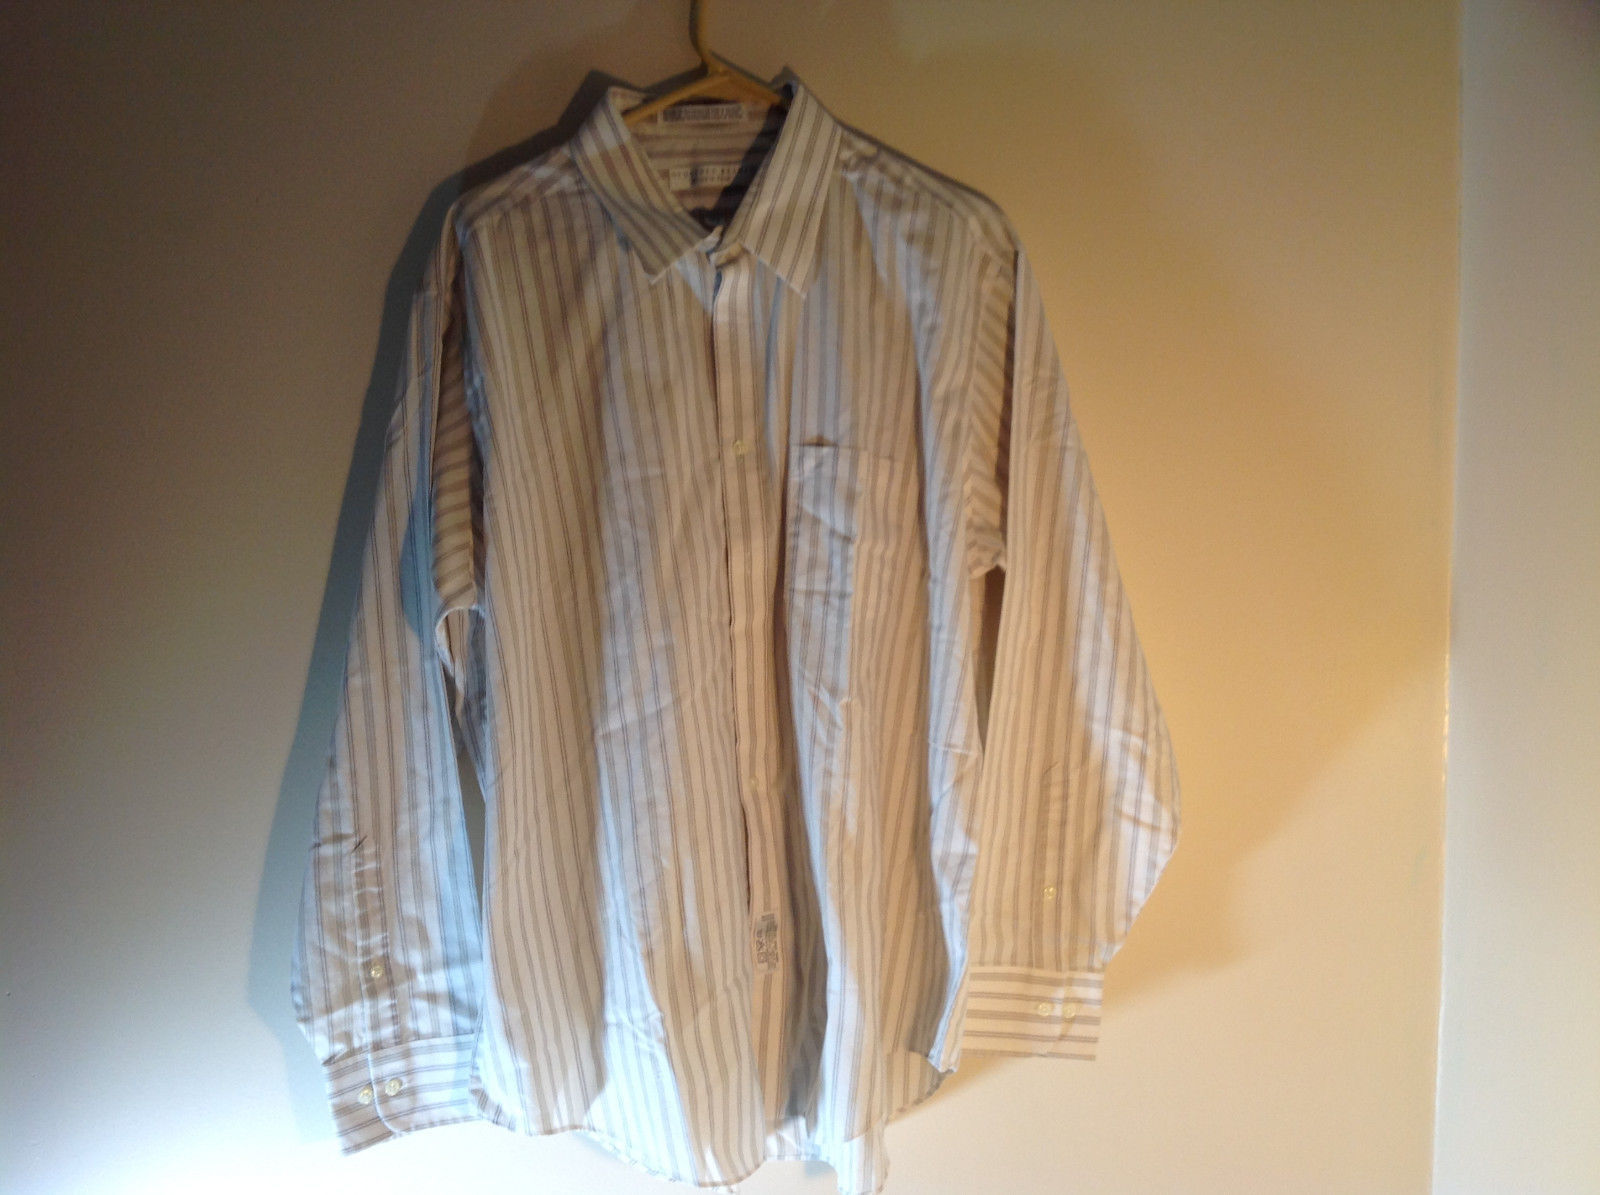 Geoffrey Beene White Long Sleeved Button Up Wrinkle Free Dress Shirt Size 17.5